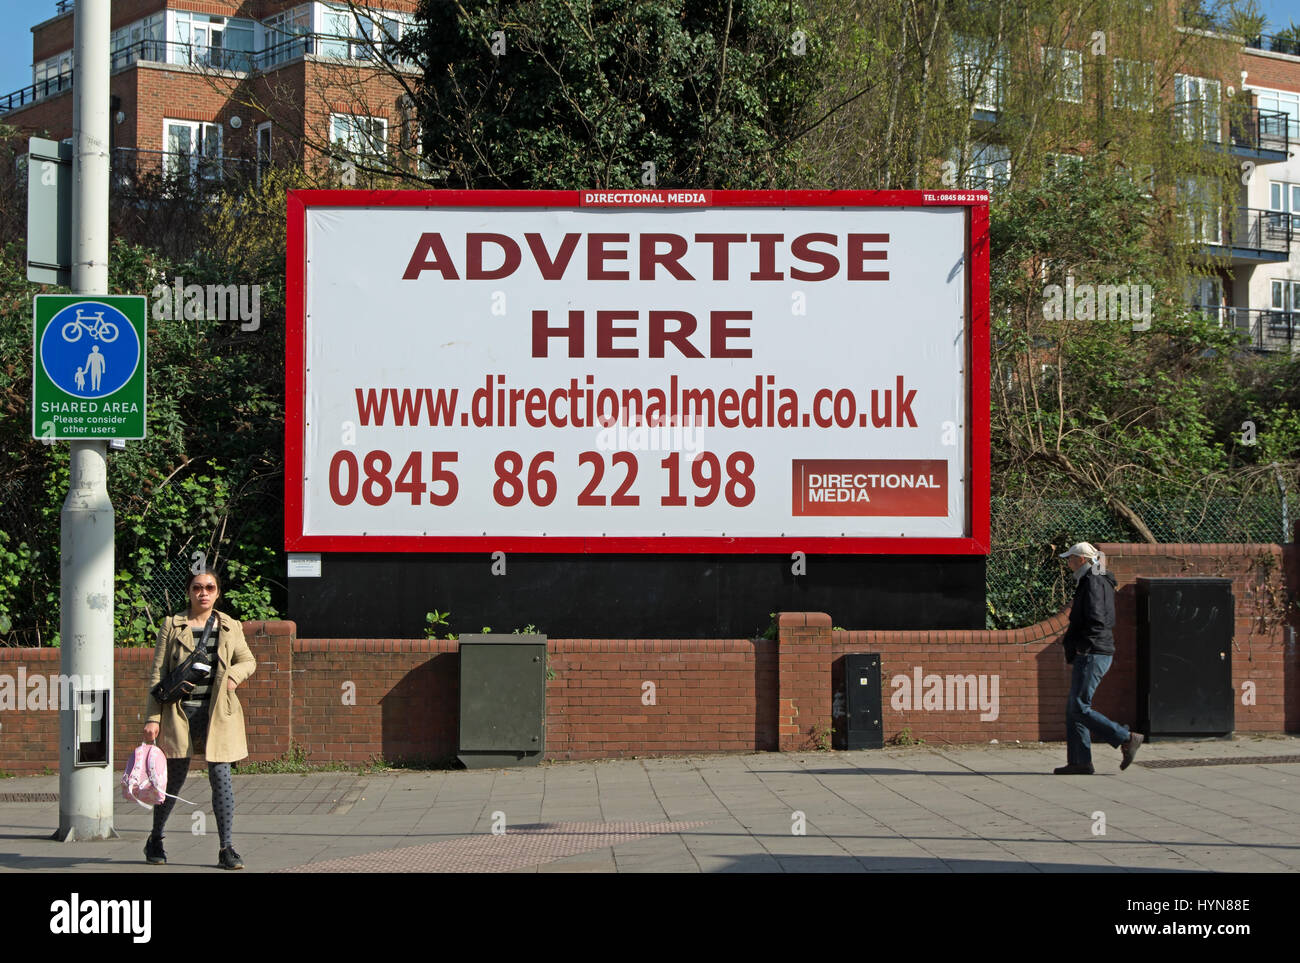 advertise here, billboard inviting advertisers to advertise, in kingston upon thames, surrey, england - Stock Image